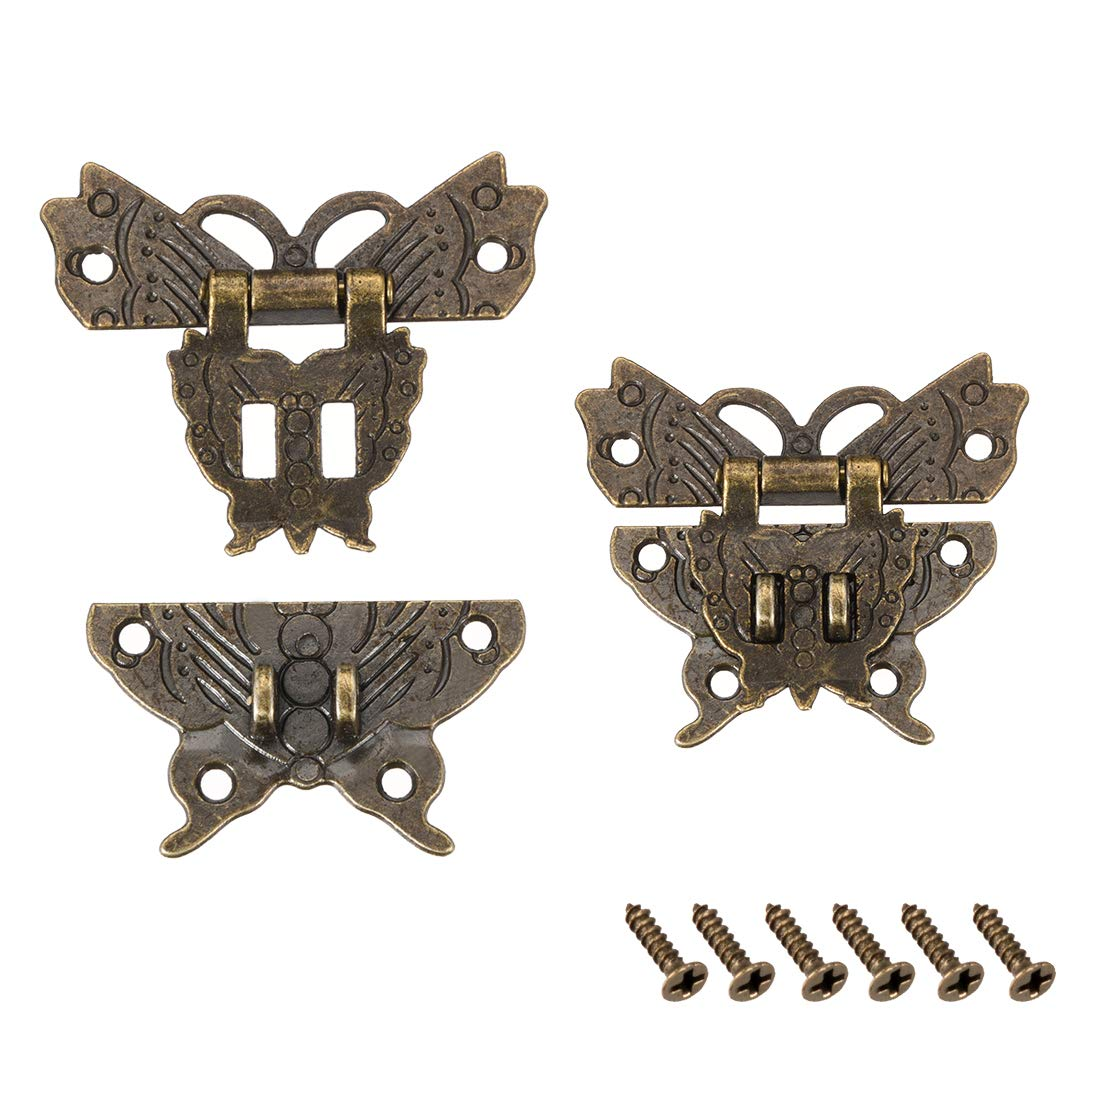 uxcell 2 Sets Wood Case Chest Box Rectangle Clasp Closure Hasp Latches Bronze Tone 51 x 43mm